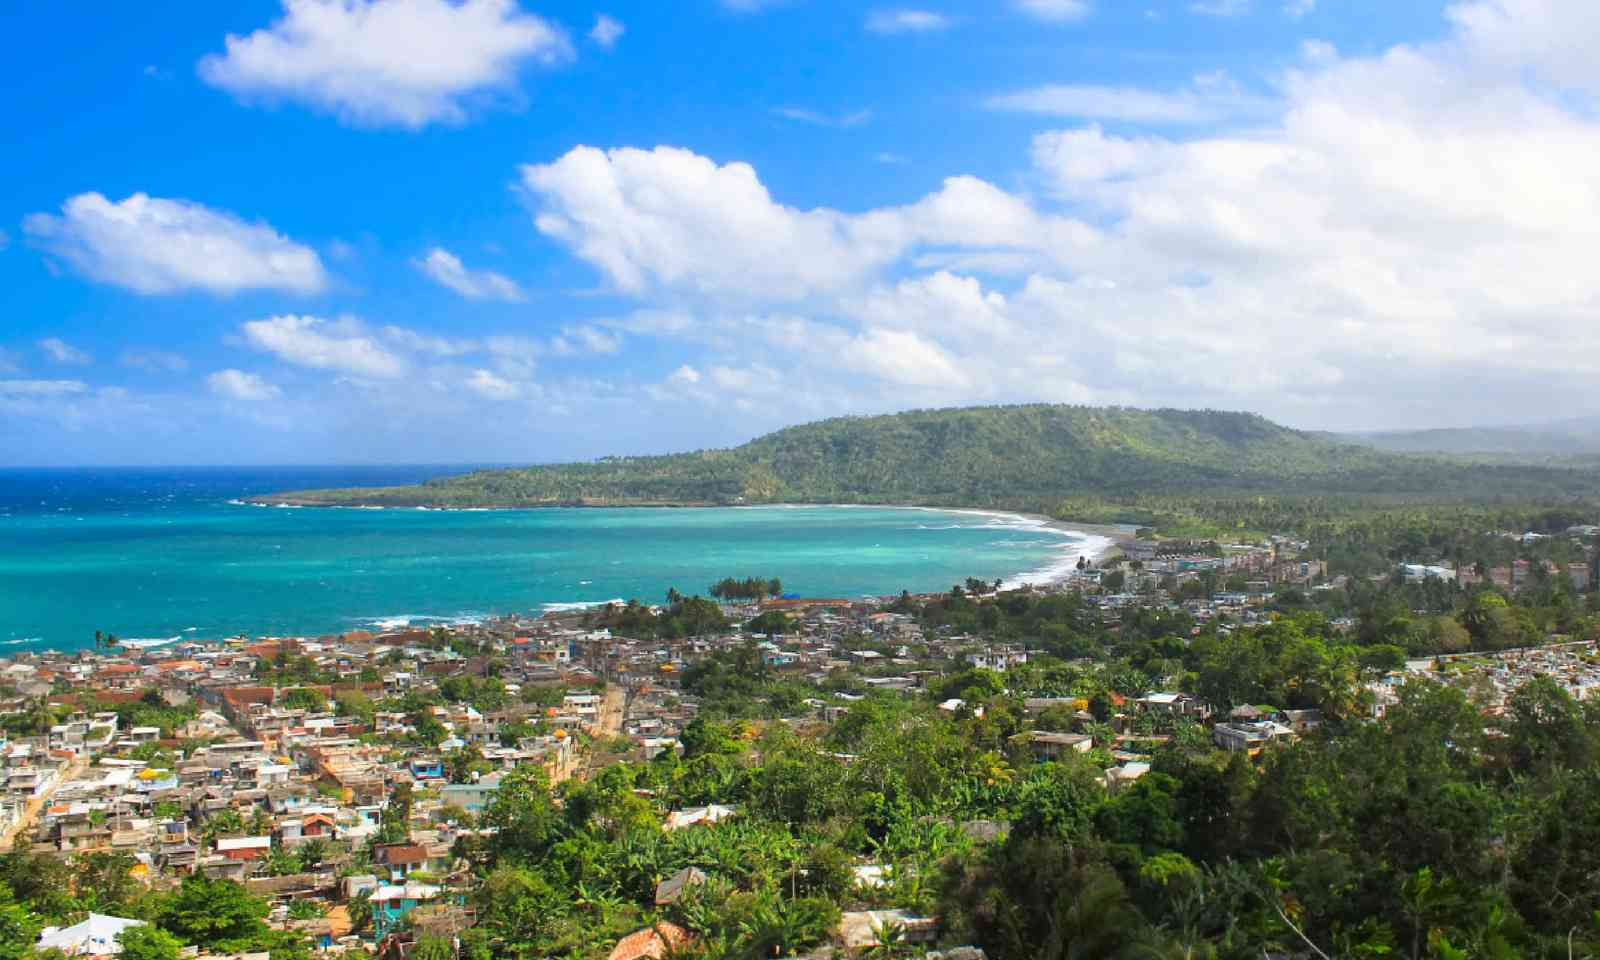 Panoramic view of Baracoa (Shutterstock)